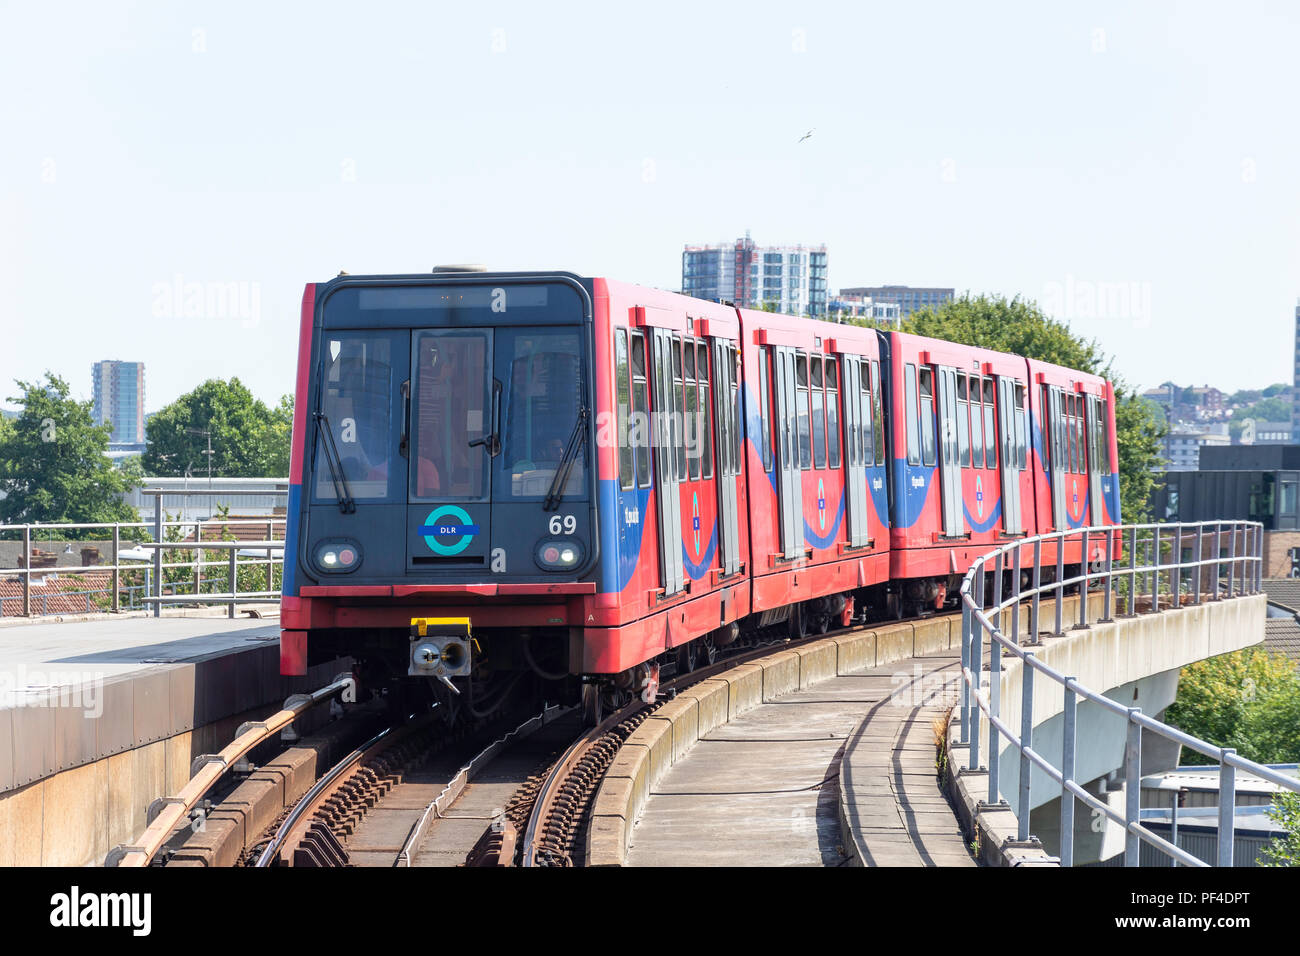 London City Airport DLR train, Silvertown, London Borough of Newham, Greater London, England, United Kingdom - Stock Image